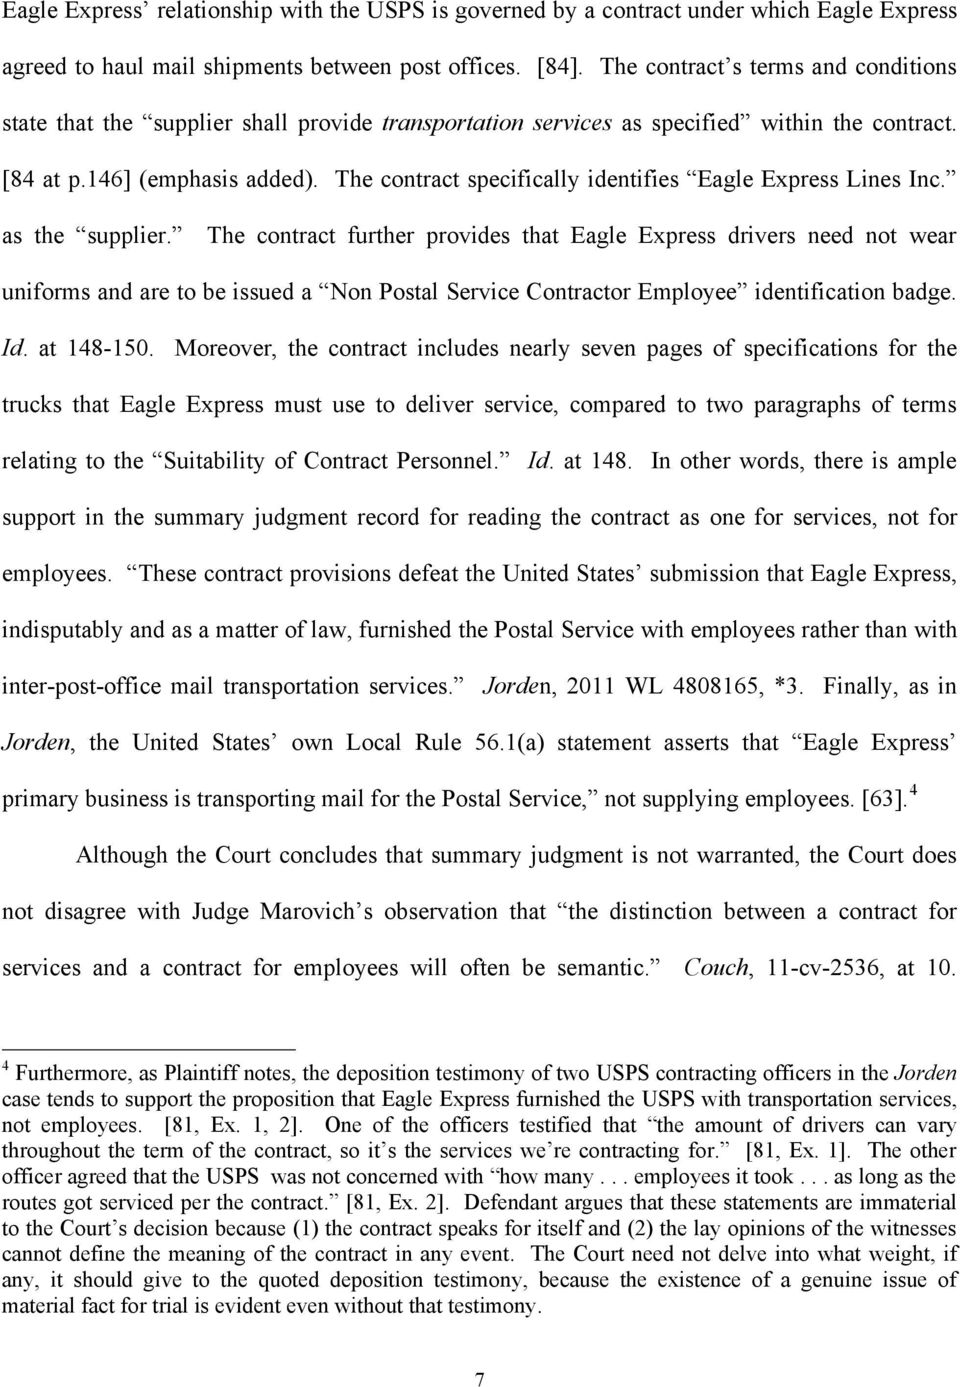 The contract specifically identifies Eagle Express Lines Inc. as the supplier.